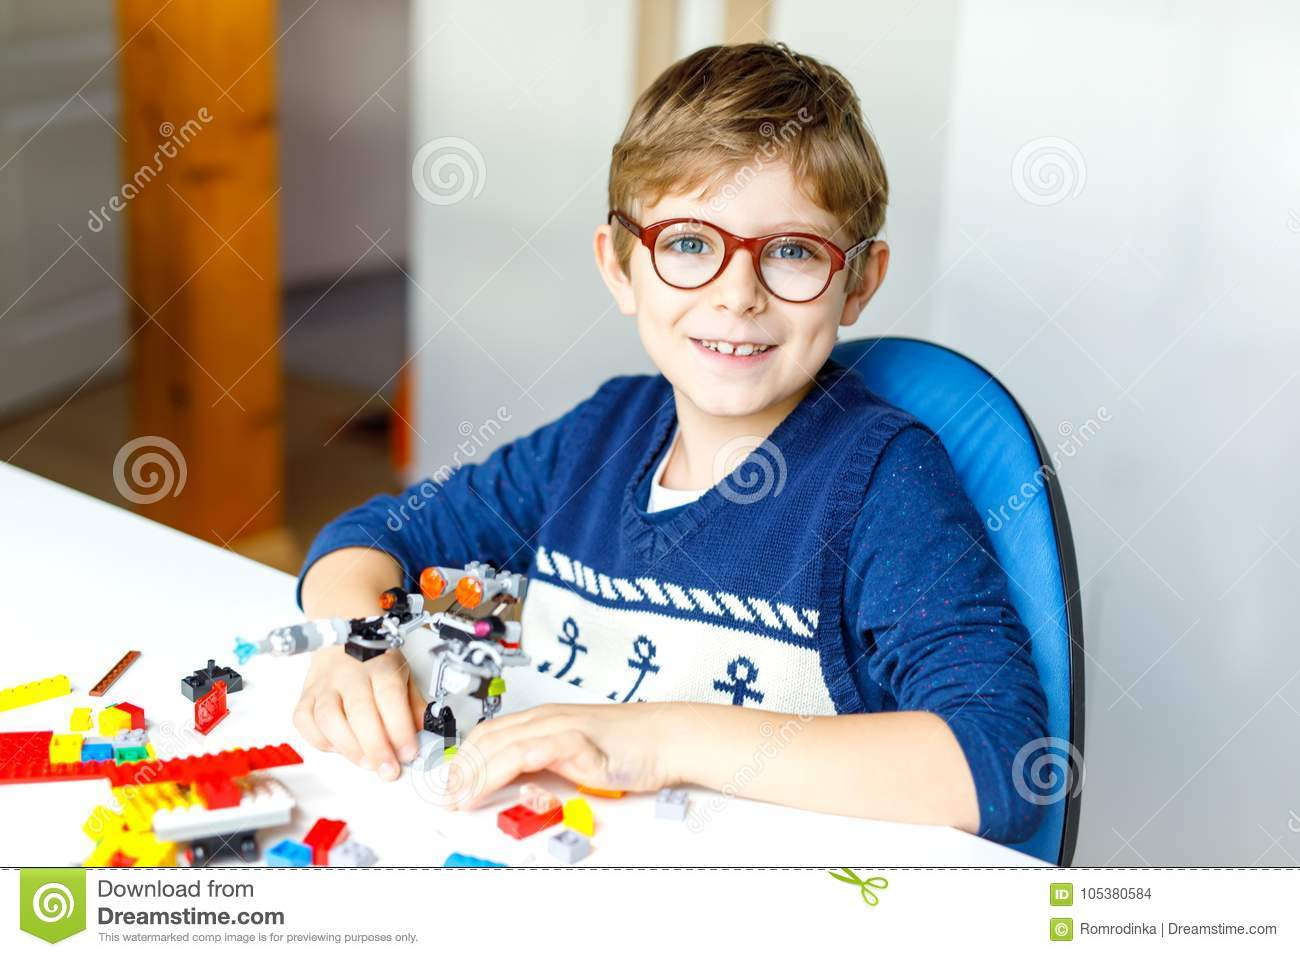 Little blond child with eye glasses playing with lots of colorful plastic blocks.